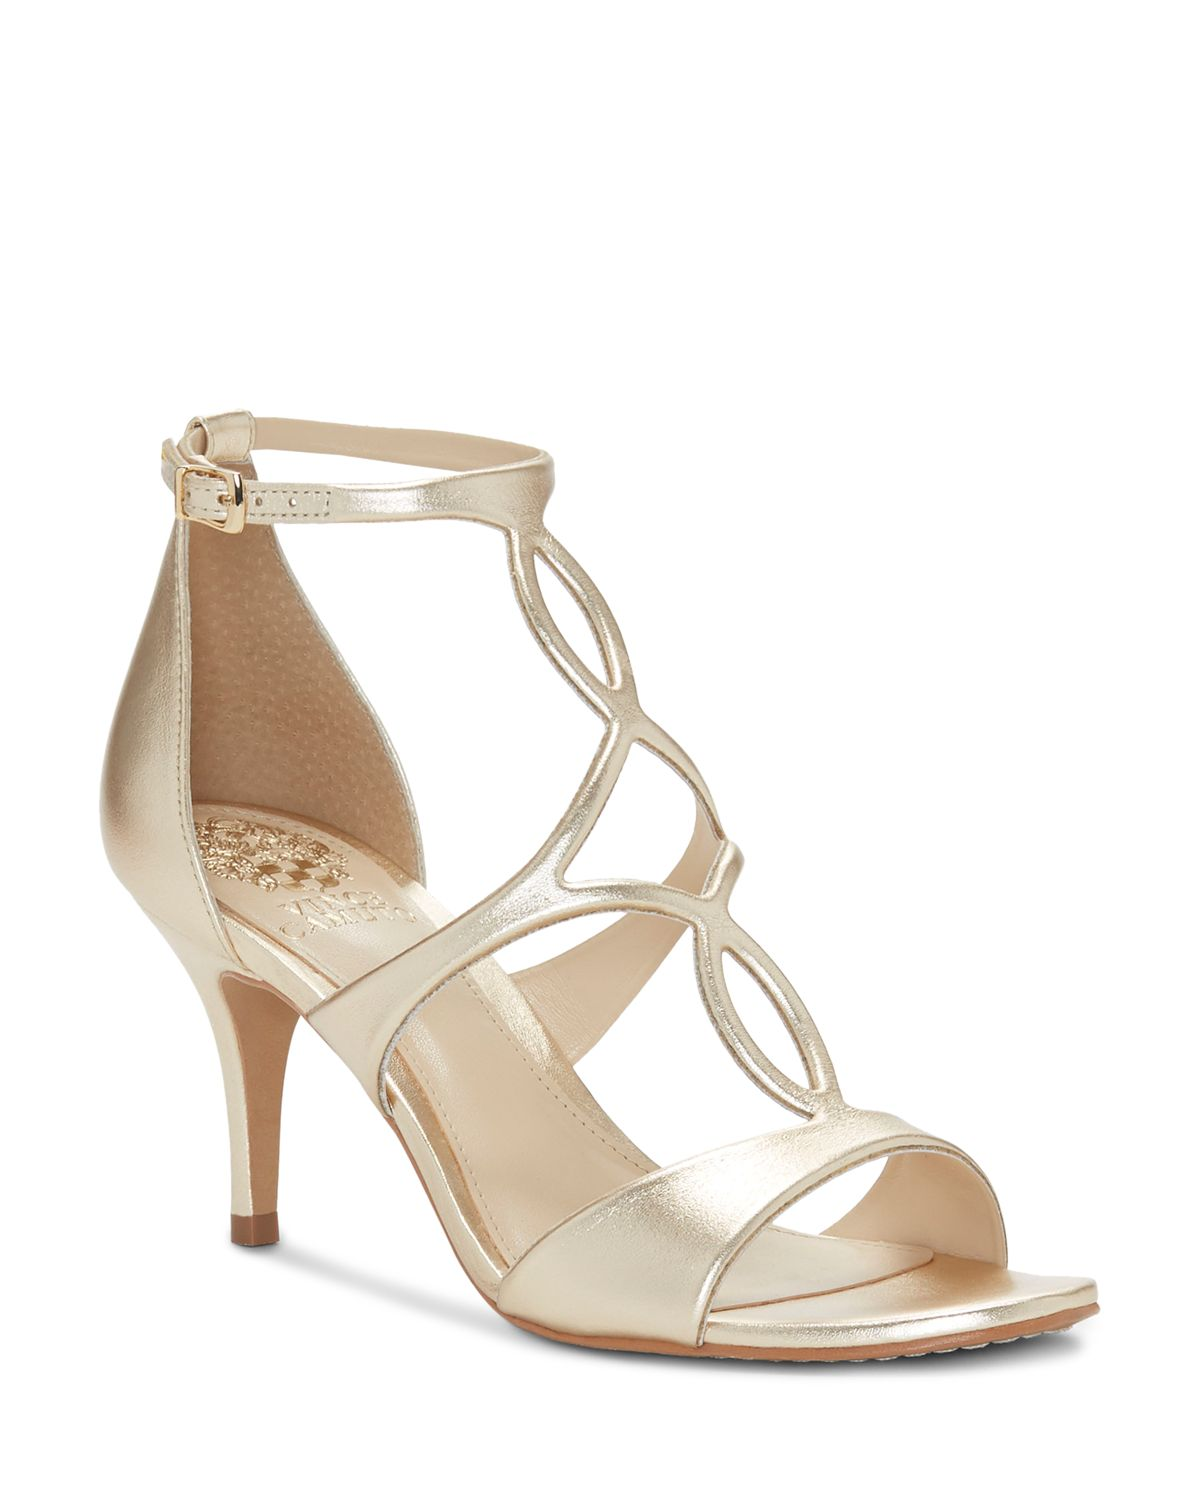 Vince Camuto Women's Payto Leather High-Heel Sandals